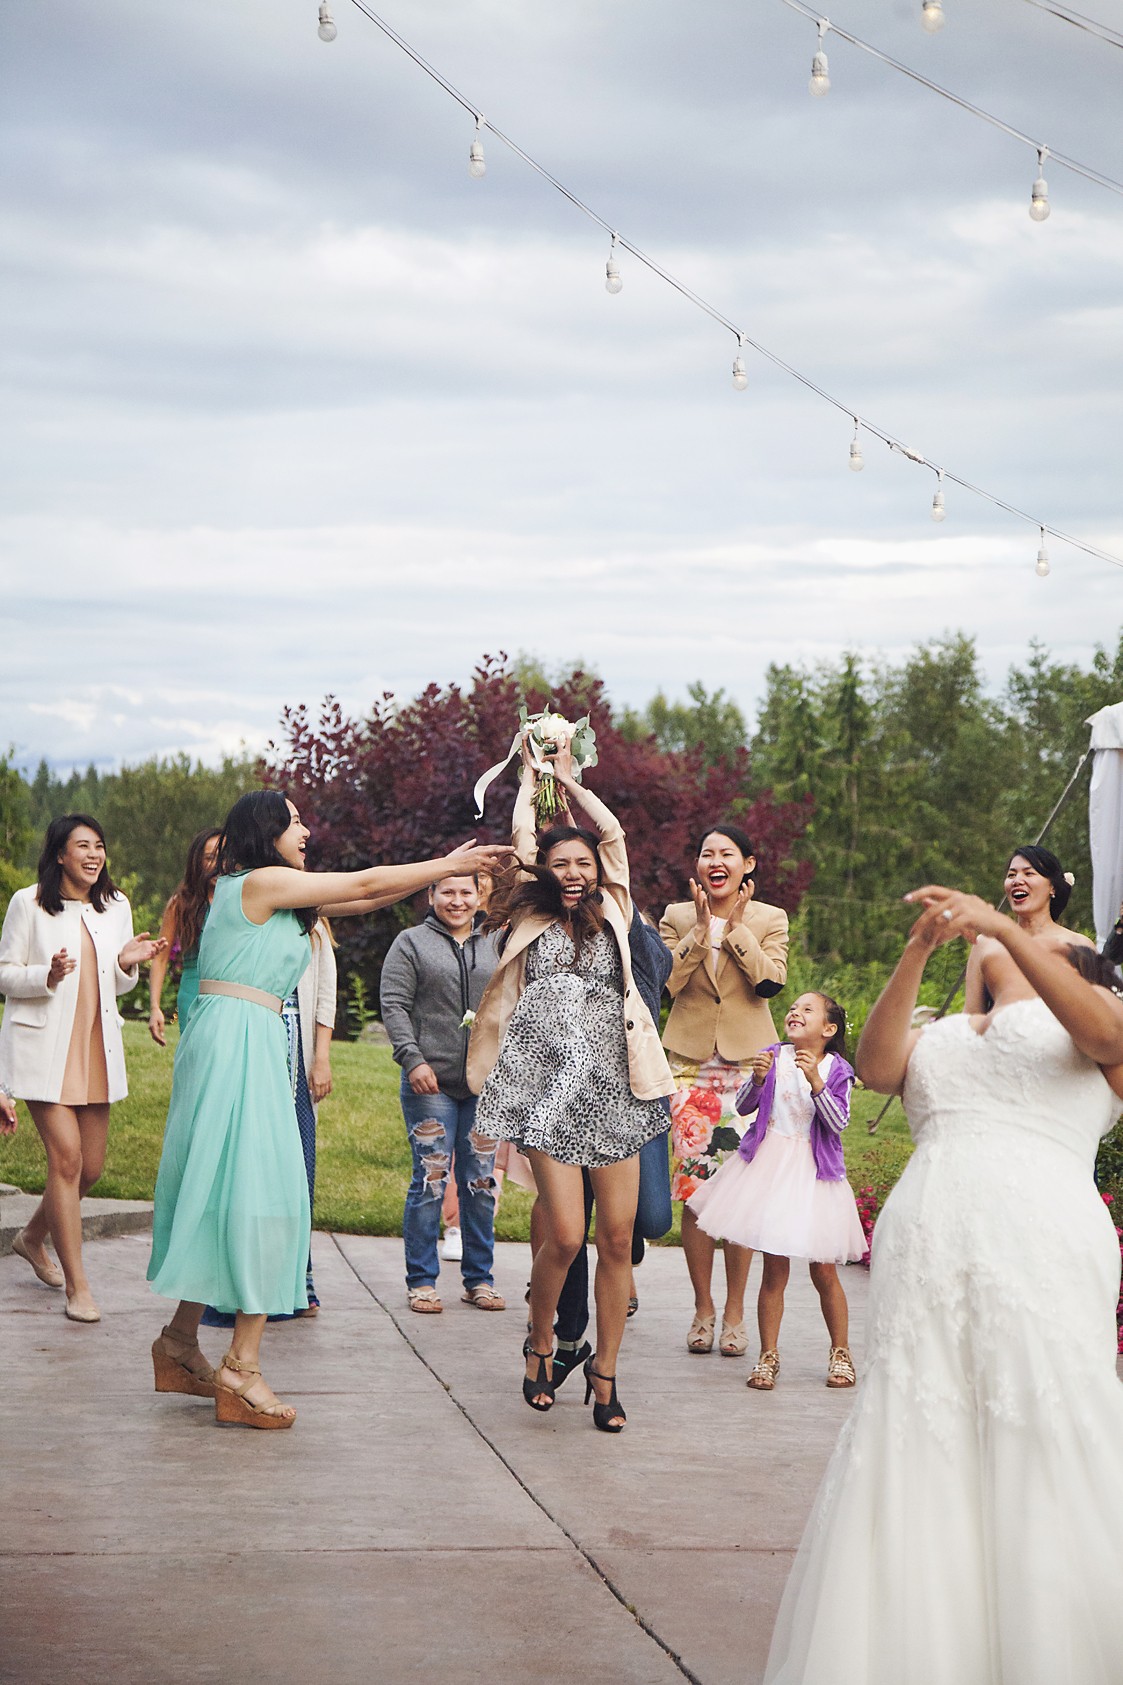 bouquet toss catch photo